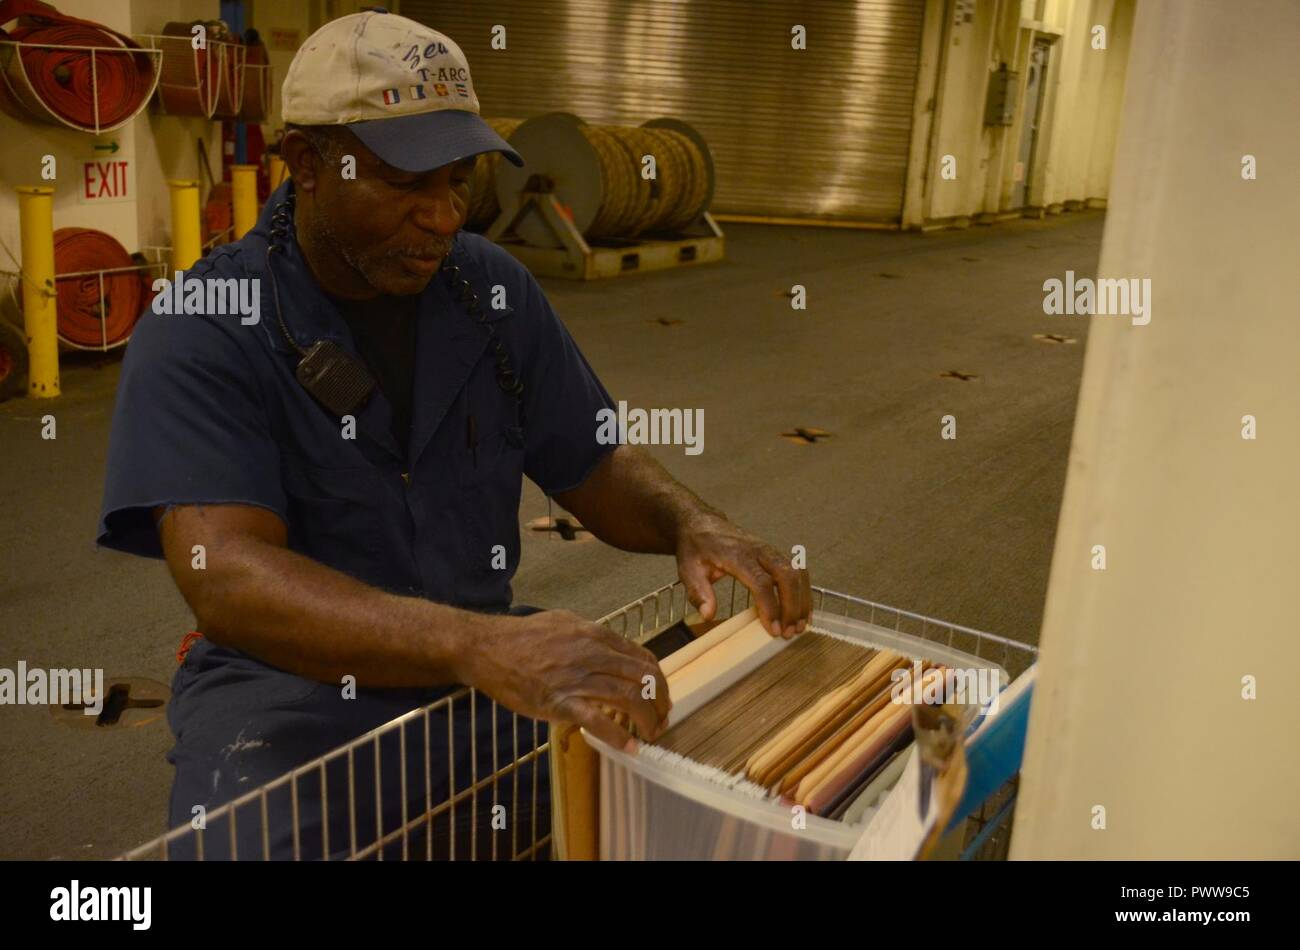 NOUMEA, New Caledonia (July 03, 2017) Joseph Celestine, Able-Bodied Seaman (maintenance) onboard USNS Sacagawea (T-AKE 2), files documents off shore Noumea, New Caledonia in support of Koa Moana 17, July 3. Koa Moana 17 is designed to improve theater security, and conduct law enforcement and infantry training in the Pacific region in order to enhance interoperability with partner nations. ( - Stock Image